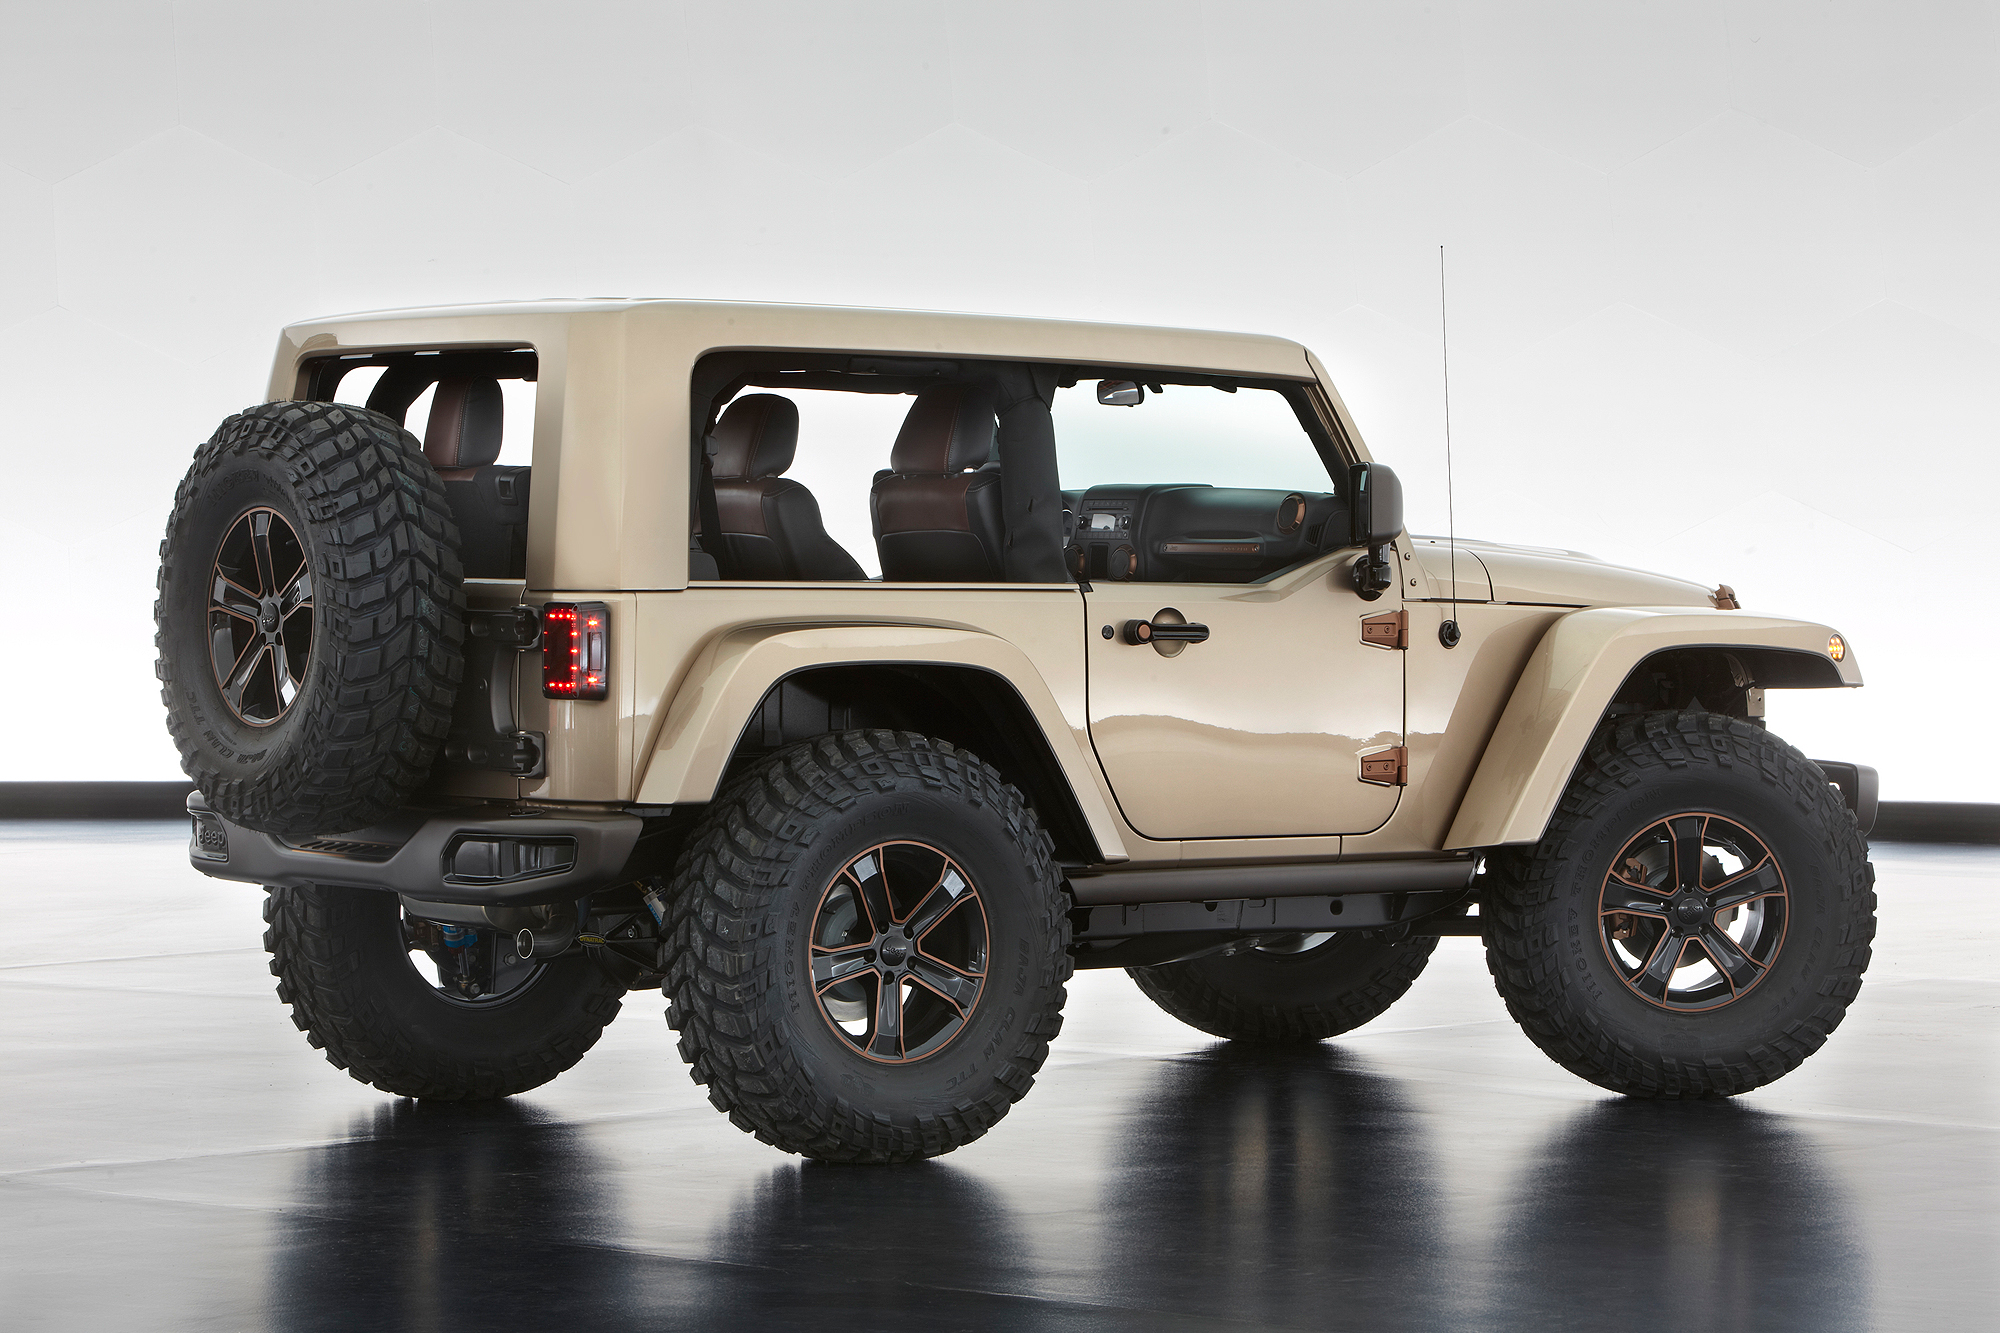 3810ac2bbb8 Jeep's six new concepts for Moab 2013 - Motoring Middle East: Car ...